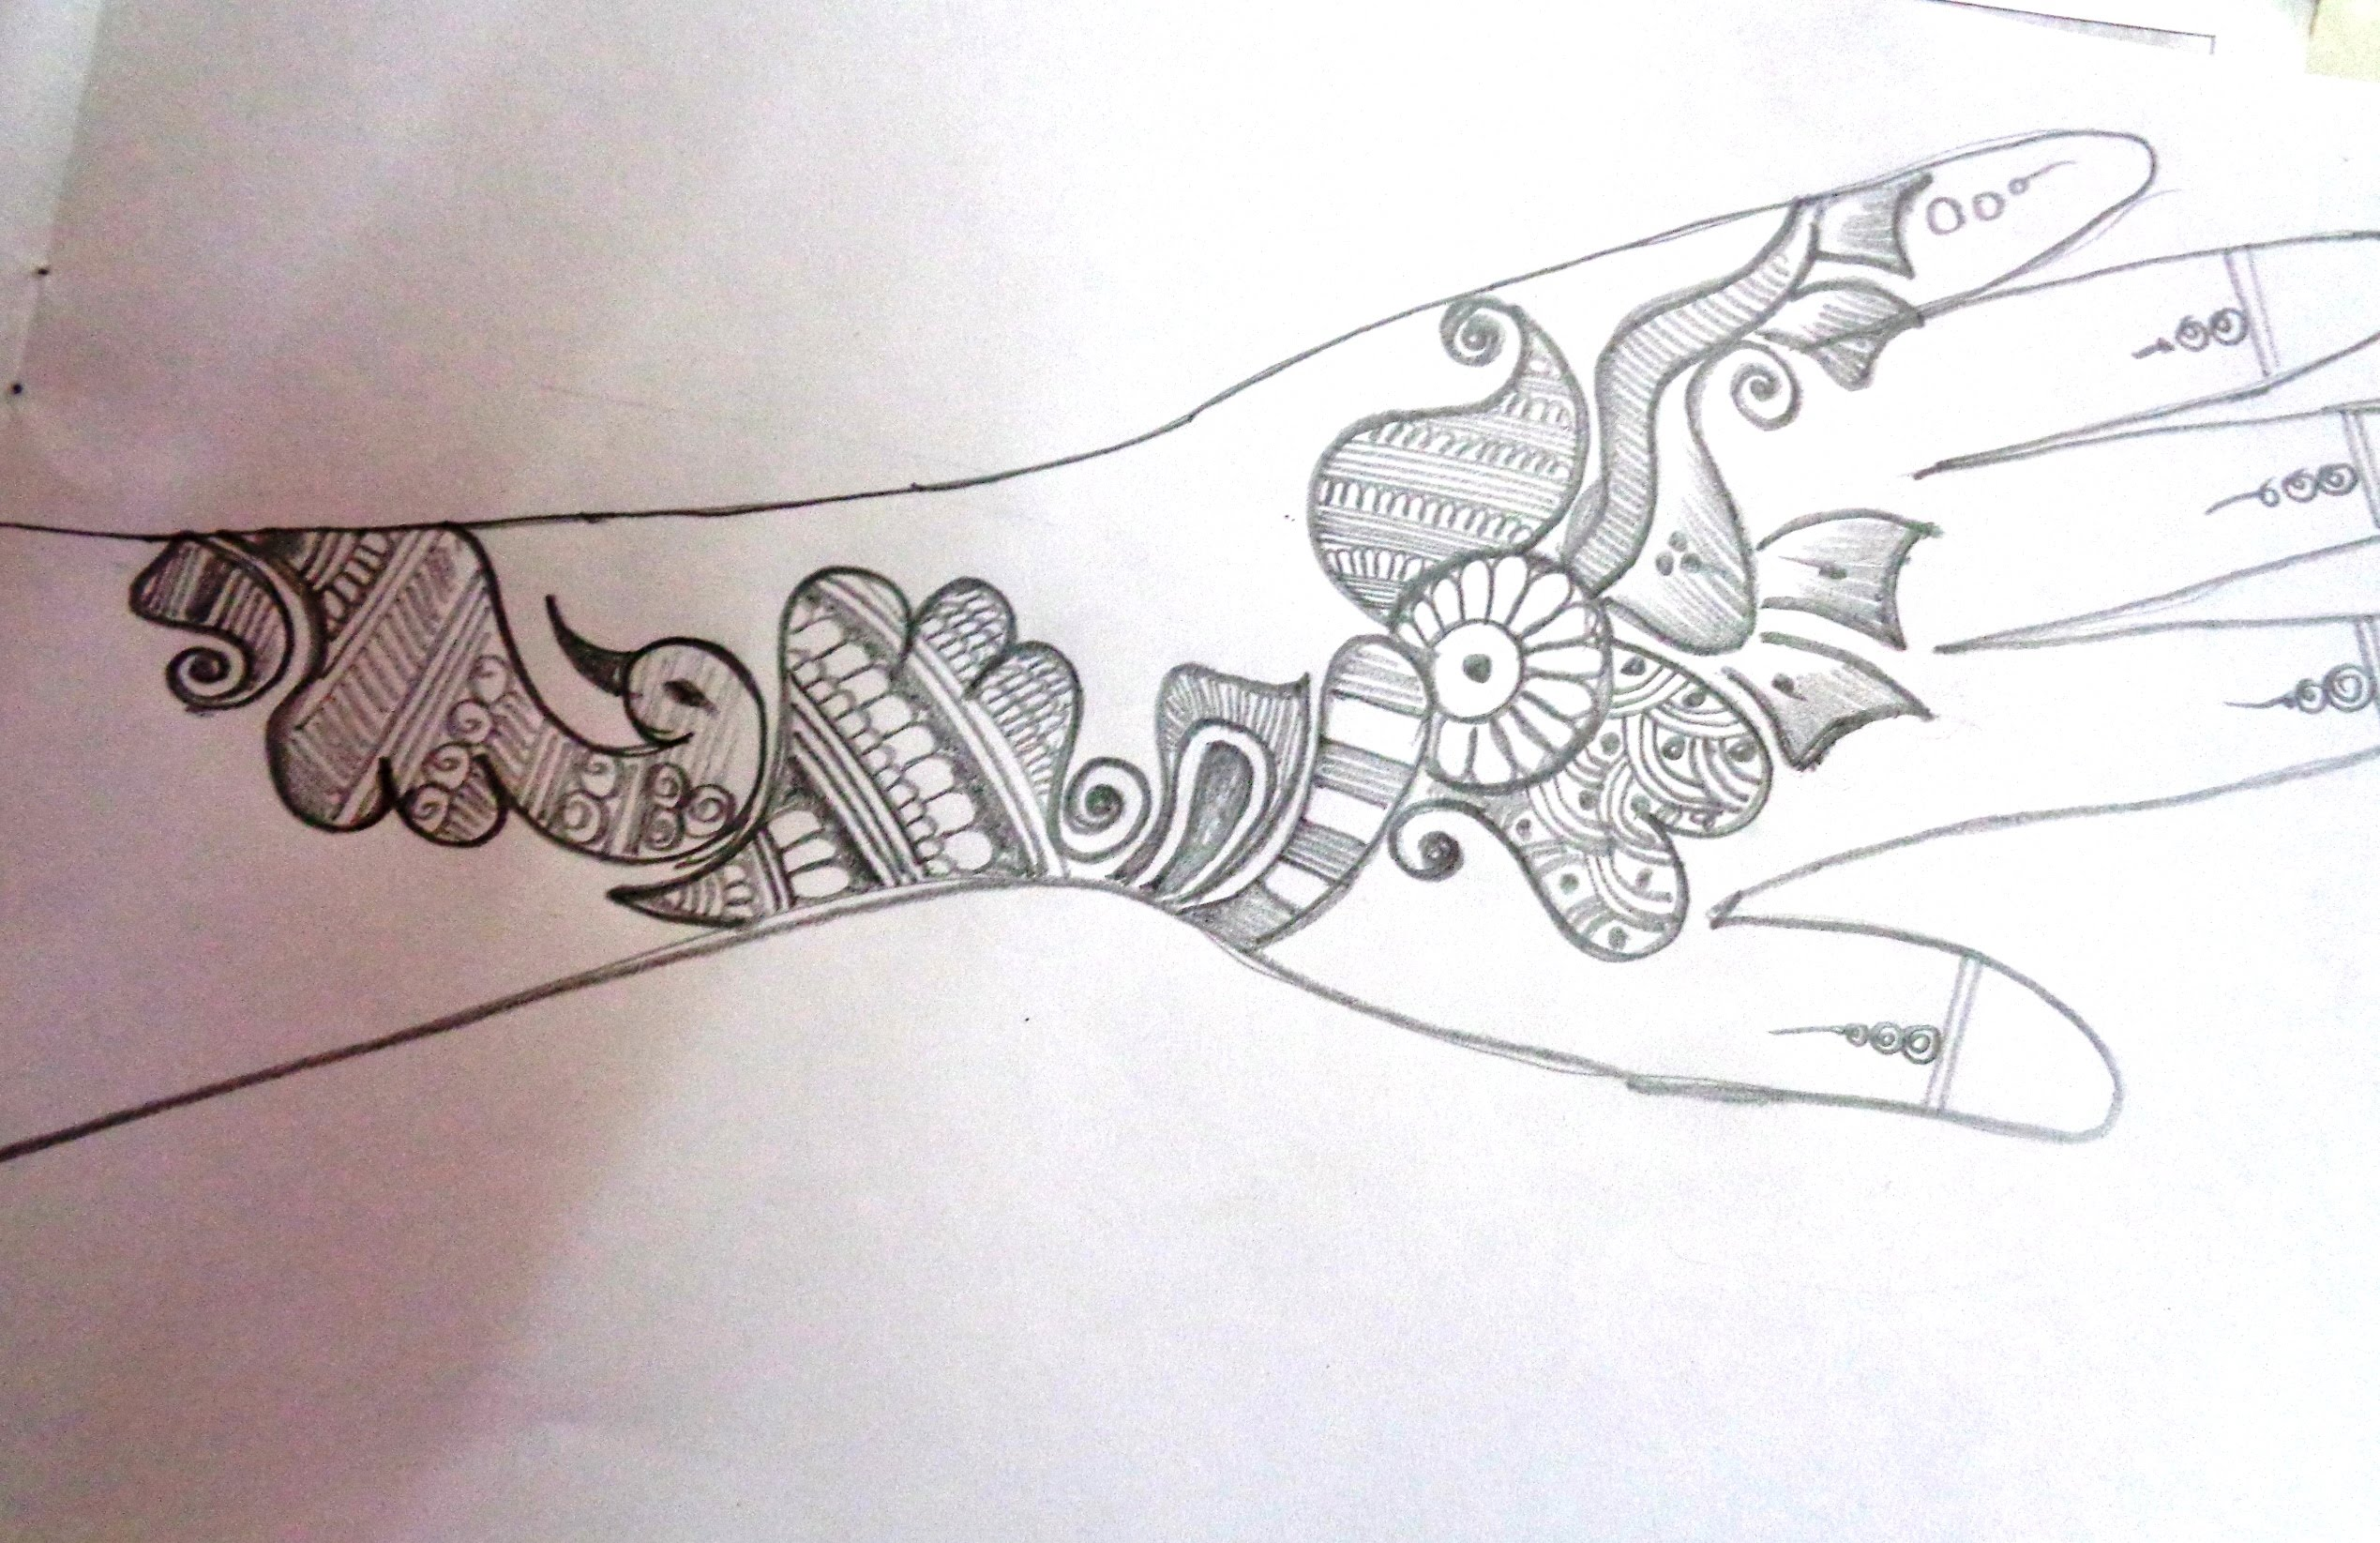 Drawn mehndi mantra A Draw A YouTube To